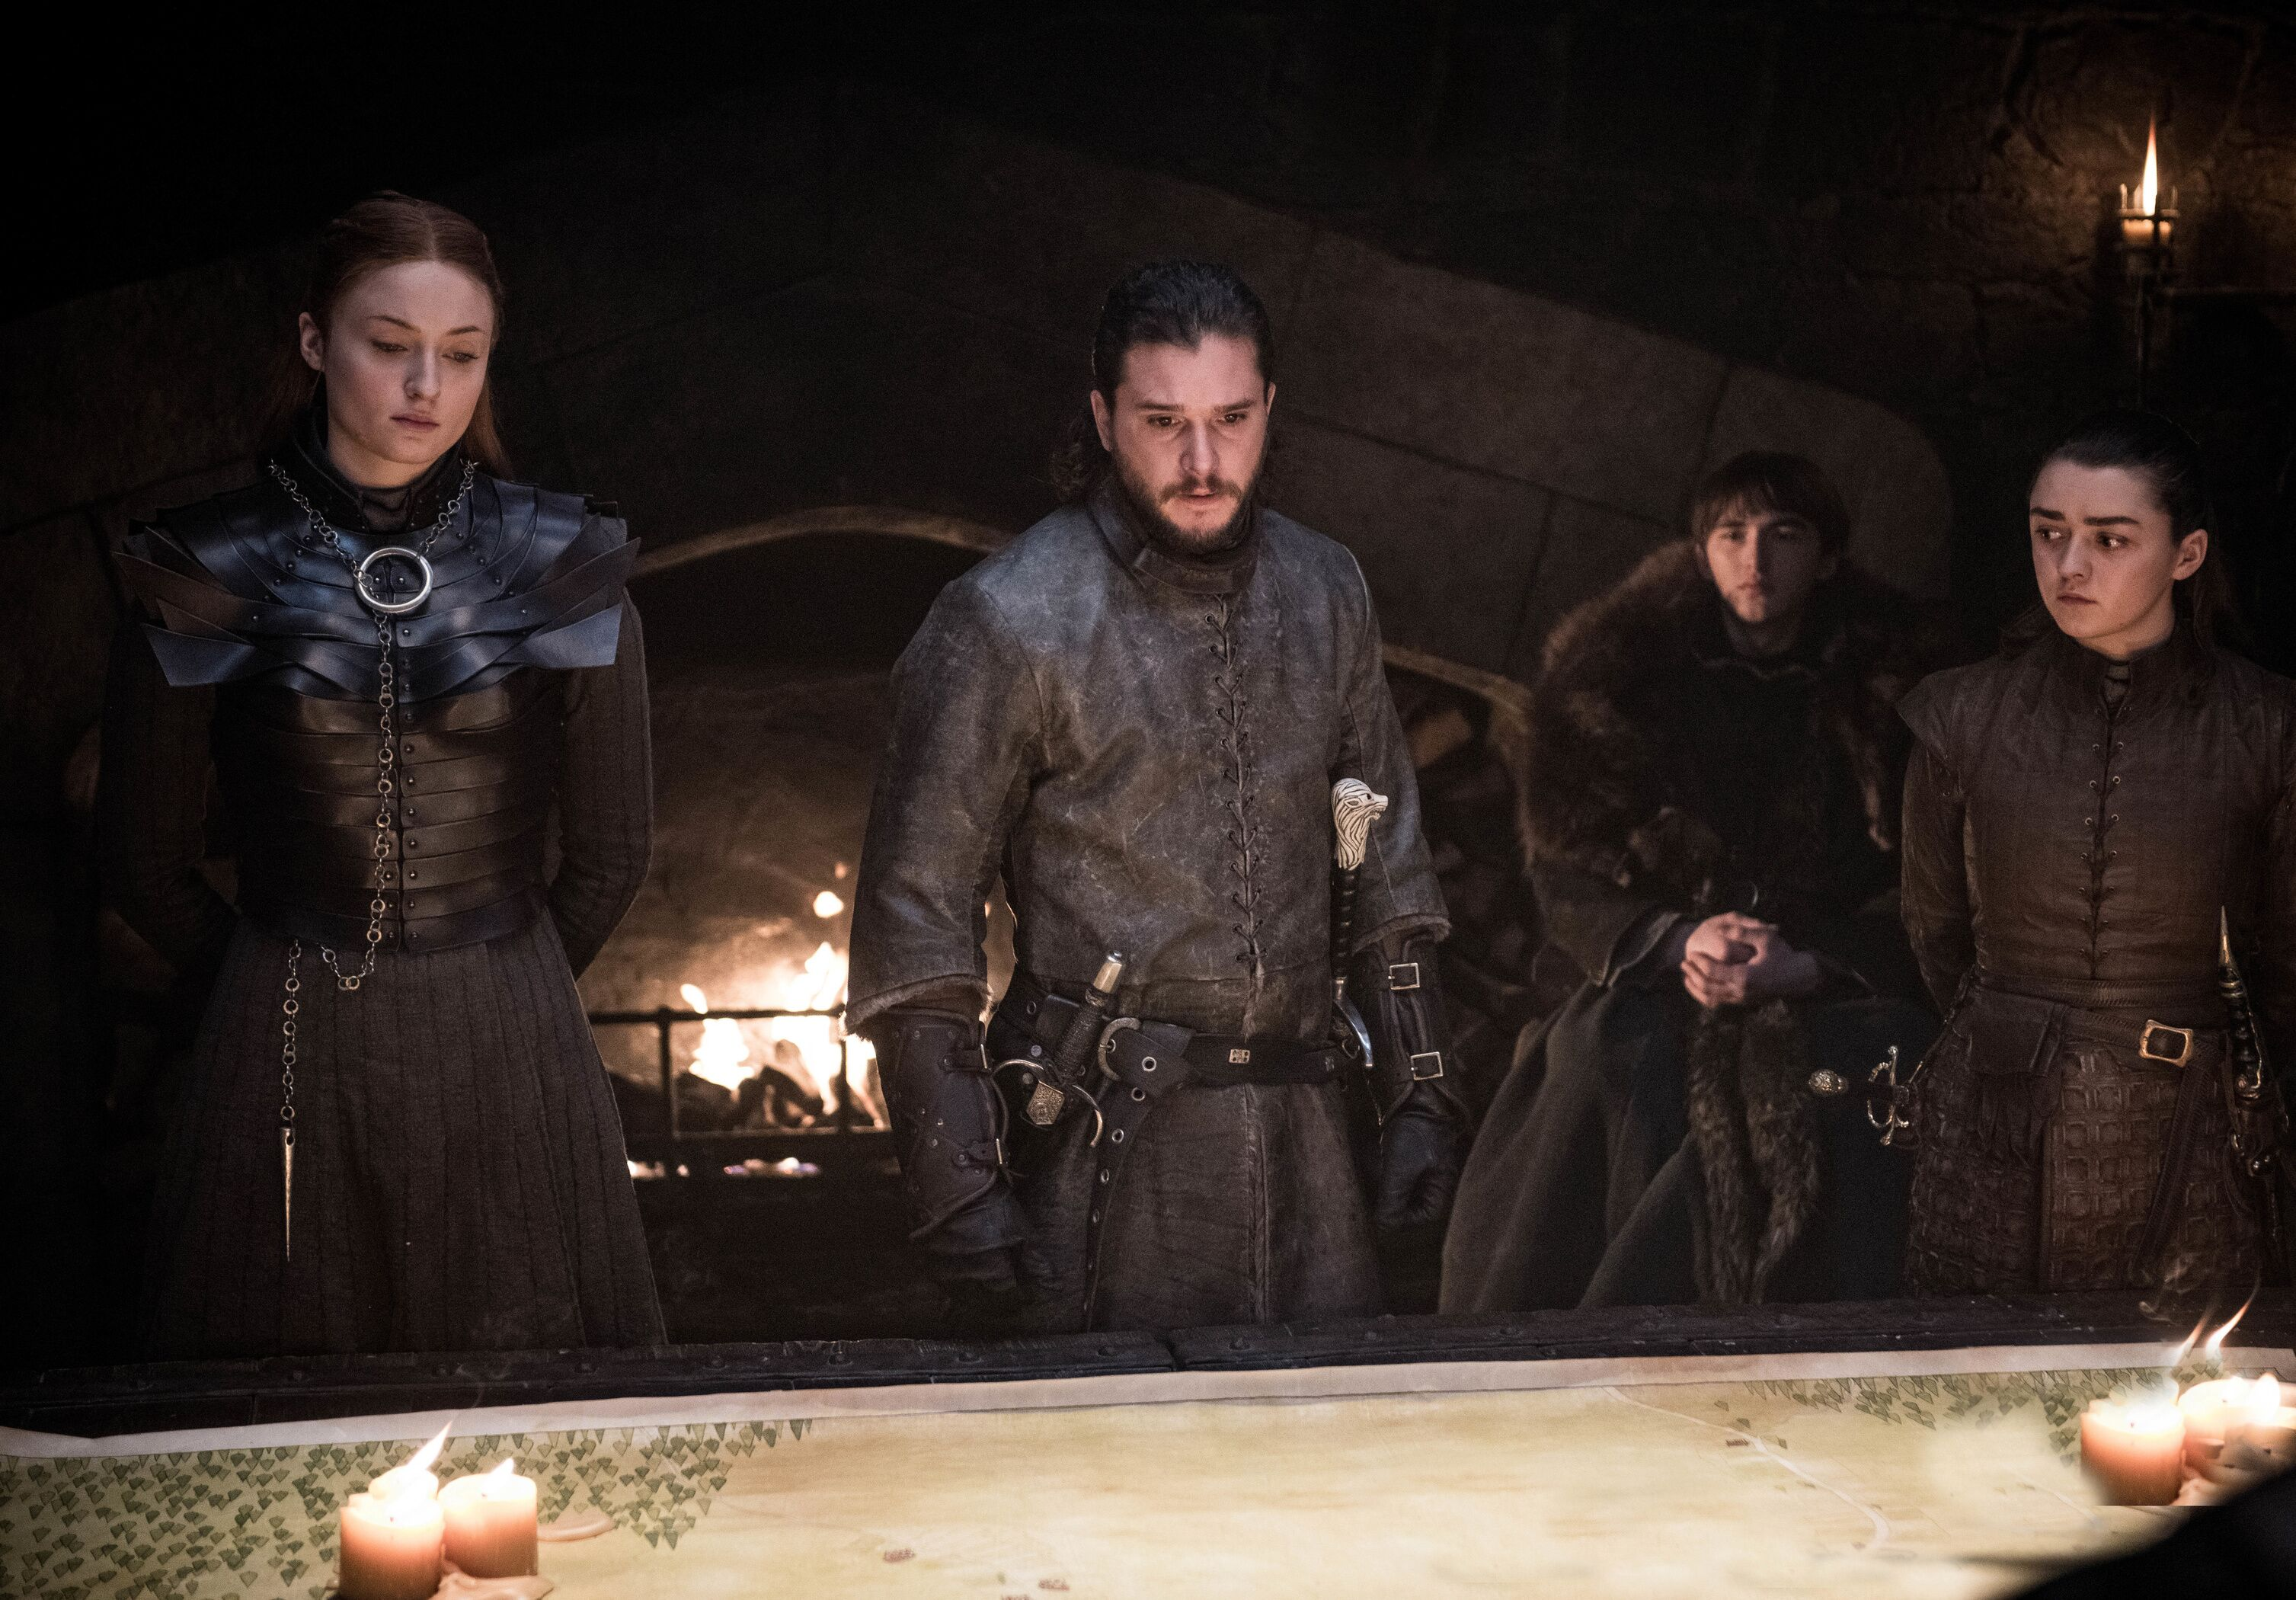 Game of Thrones season 8 episode 2 builds up to the Battle of Winterfell